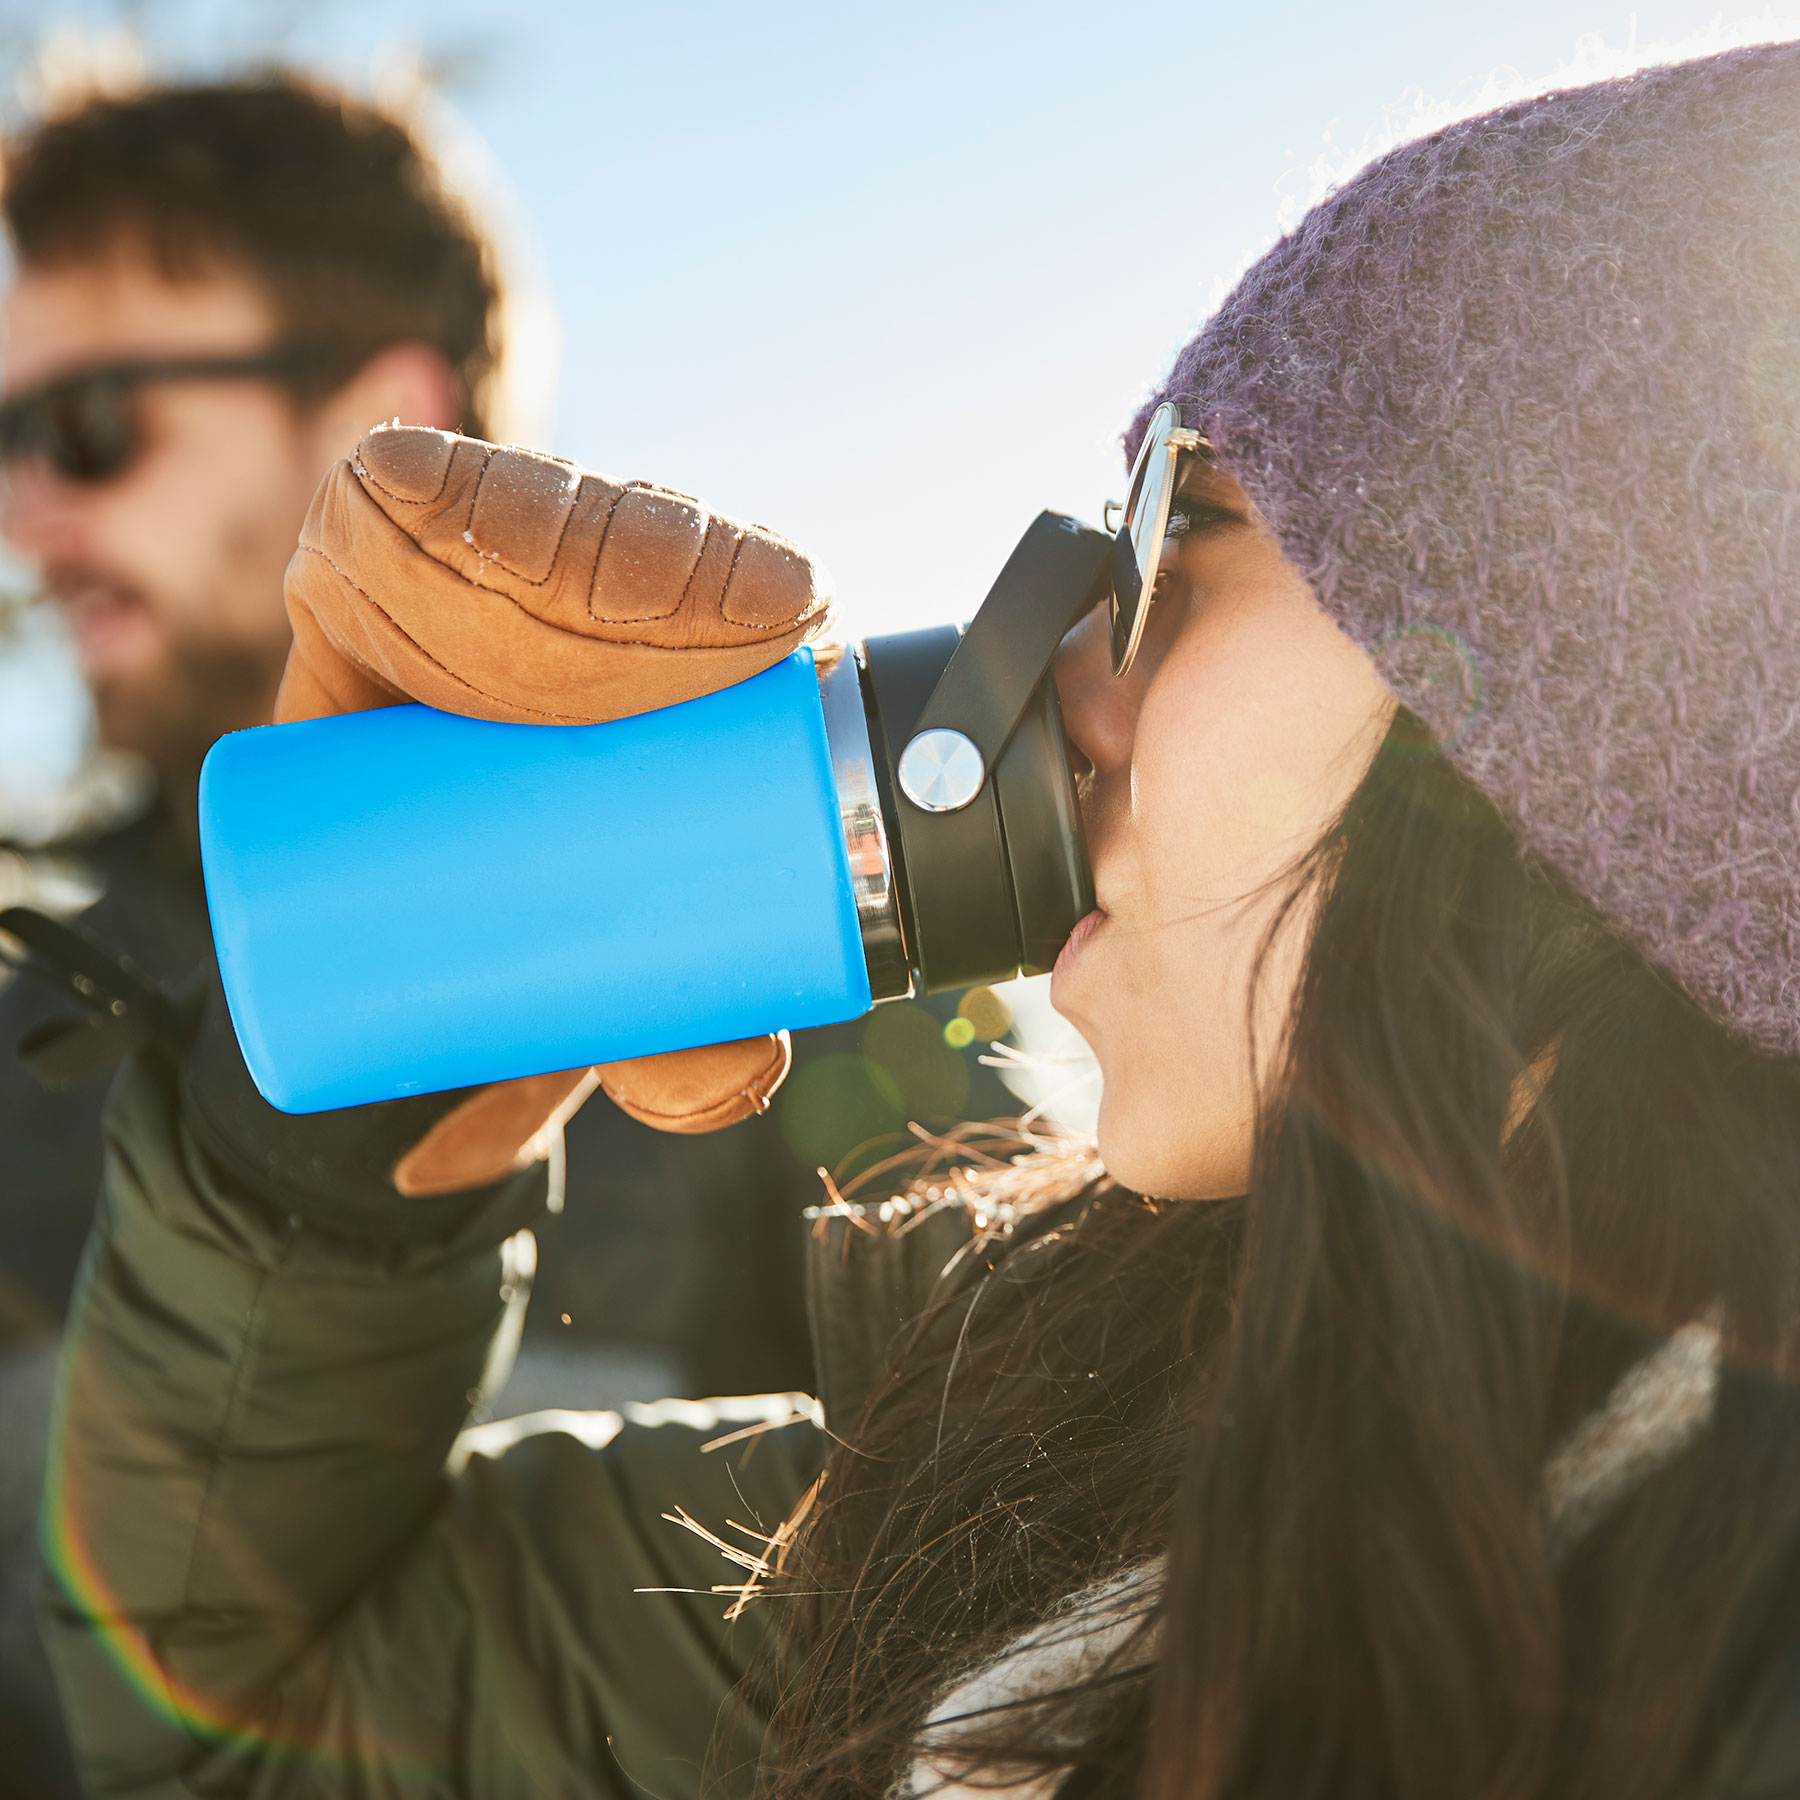 A girl is pictured taking a sip from her Flex Sip lid.